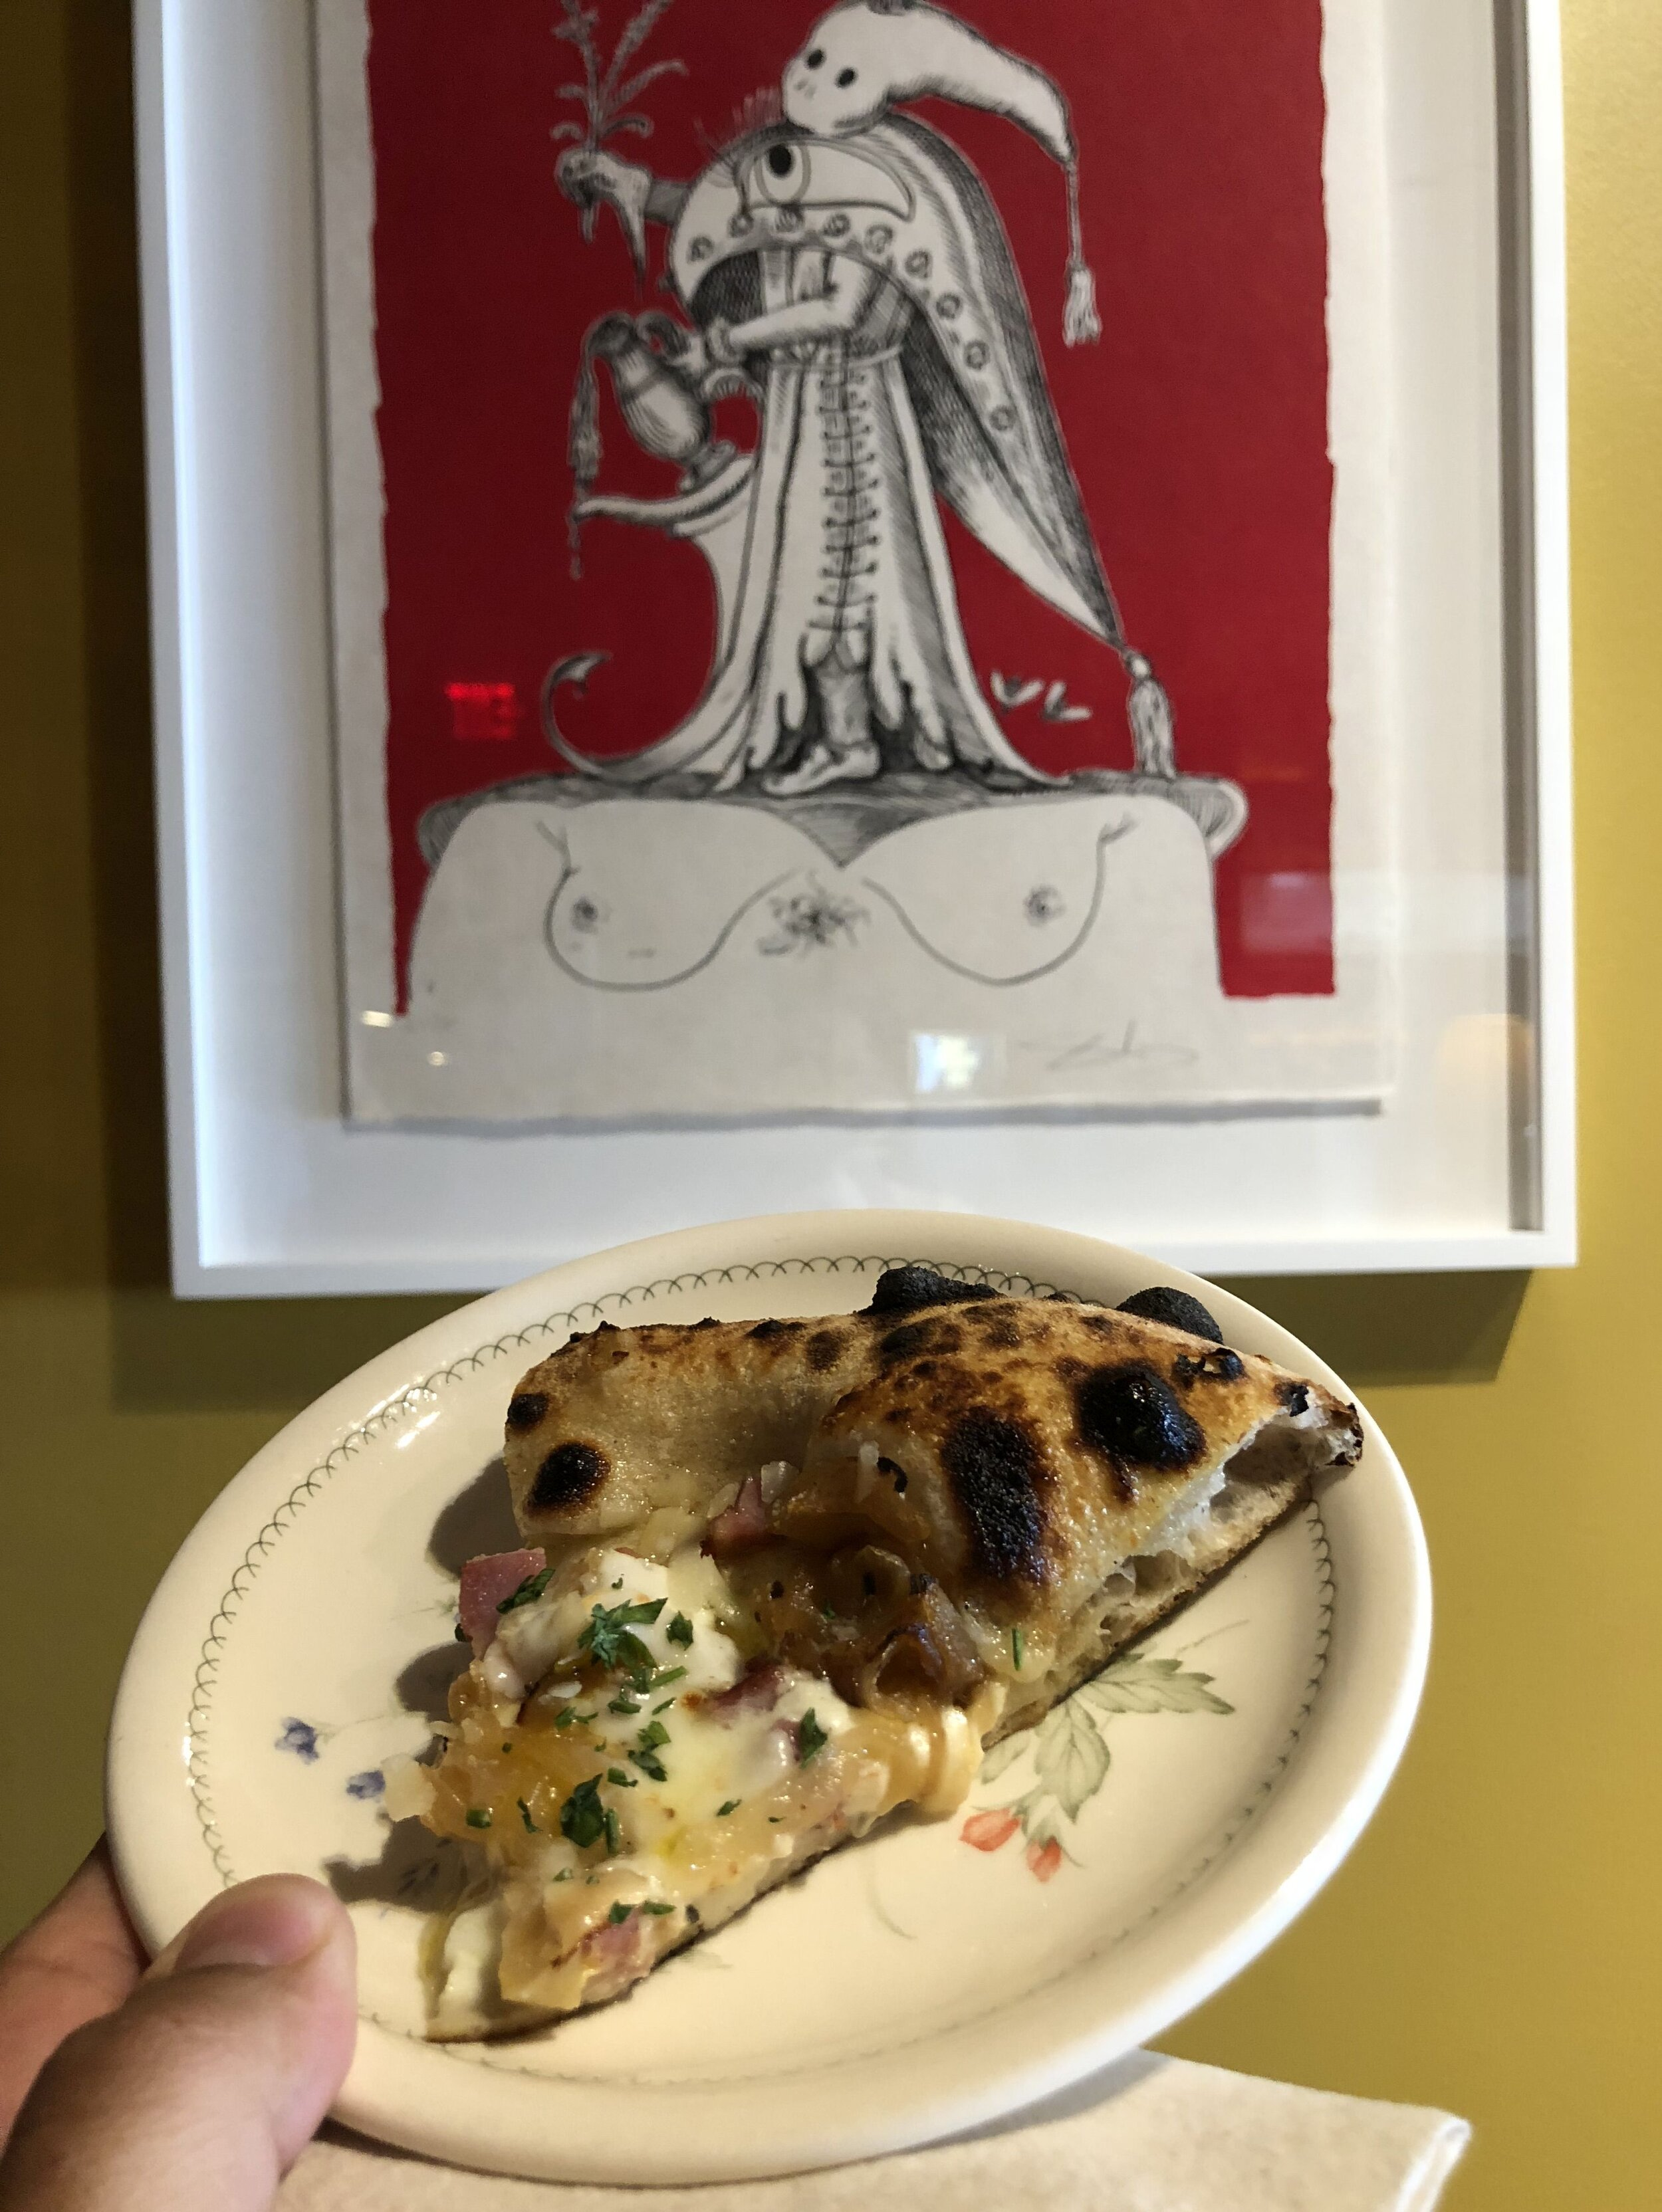 See, told you. My pizza and Sal's art.